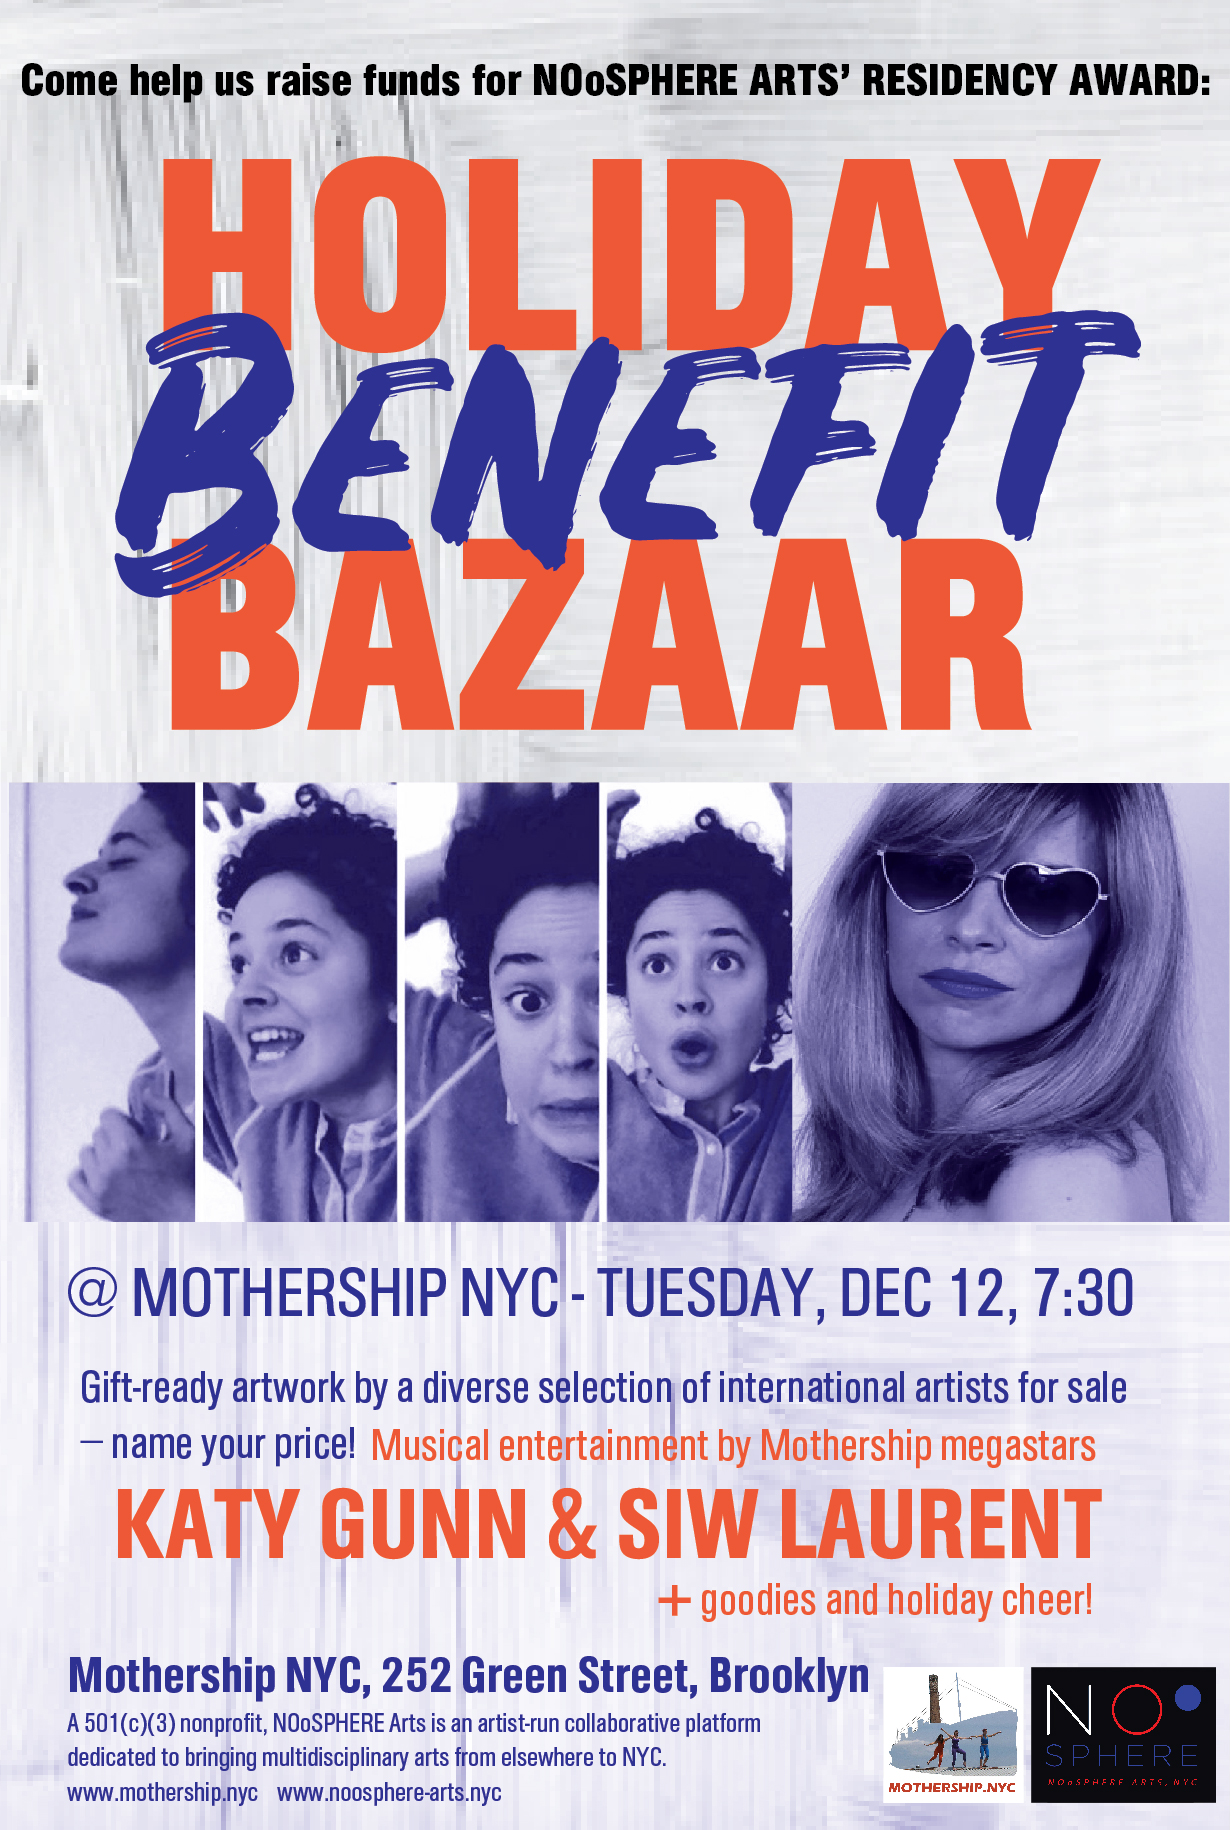 HOLIDAY BENEFIT - Tuesday, December 12, 20177:30 PM @ Mothership NYCWe are pleased to announce a new initiative under the NOoSPHERE Arts umbrella.As an artist-run nonprofit dedicated to bringing art from elsewhere to NYC, we keep thinking of more ways to accomplish this goal! Our latest vision is NOoSPHERE Arts' Residency Award, a grant program we hope to implement by 2018: Once a year, a talented international artist will be selected for a month-long residency onboard with us, followed by a public presentation of their work.As a first fundraising initiative to make this happen, we'll host an informal SILENT AUCTION of unique artworks by a selection of our international NOoSPHERE artists.Live music by Katy Gunn and Siw Laurent